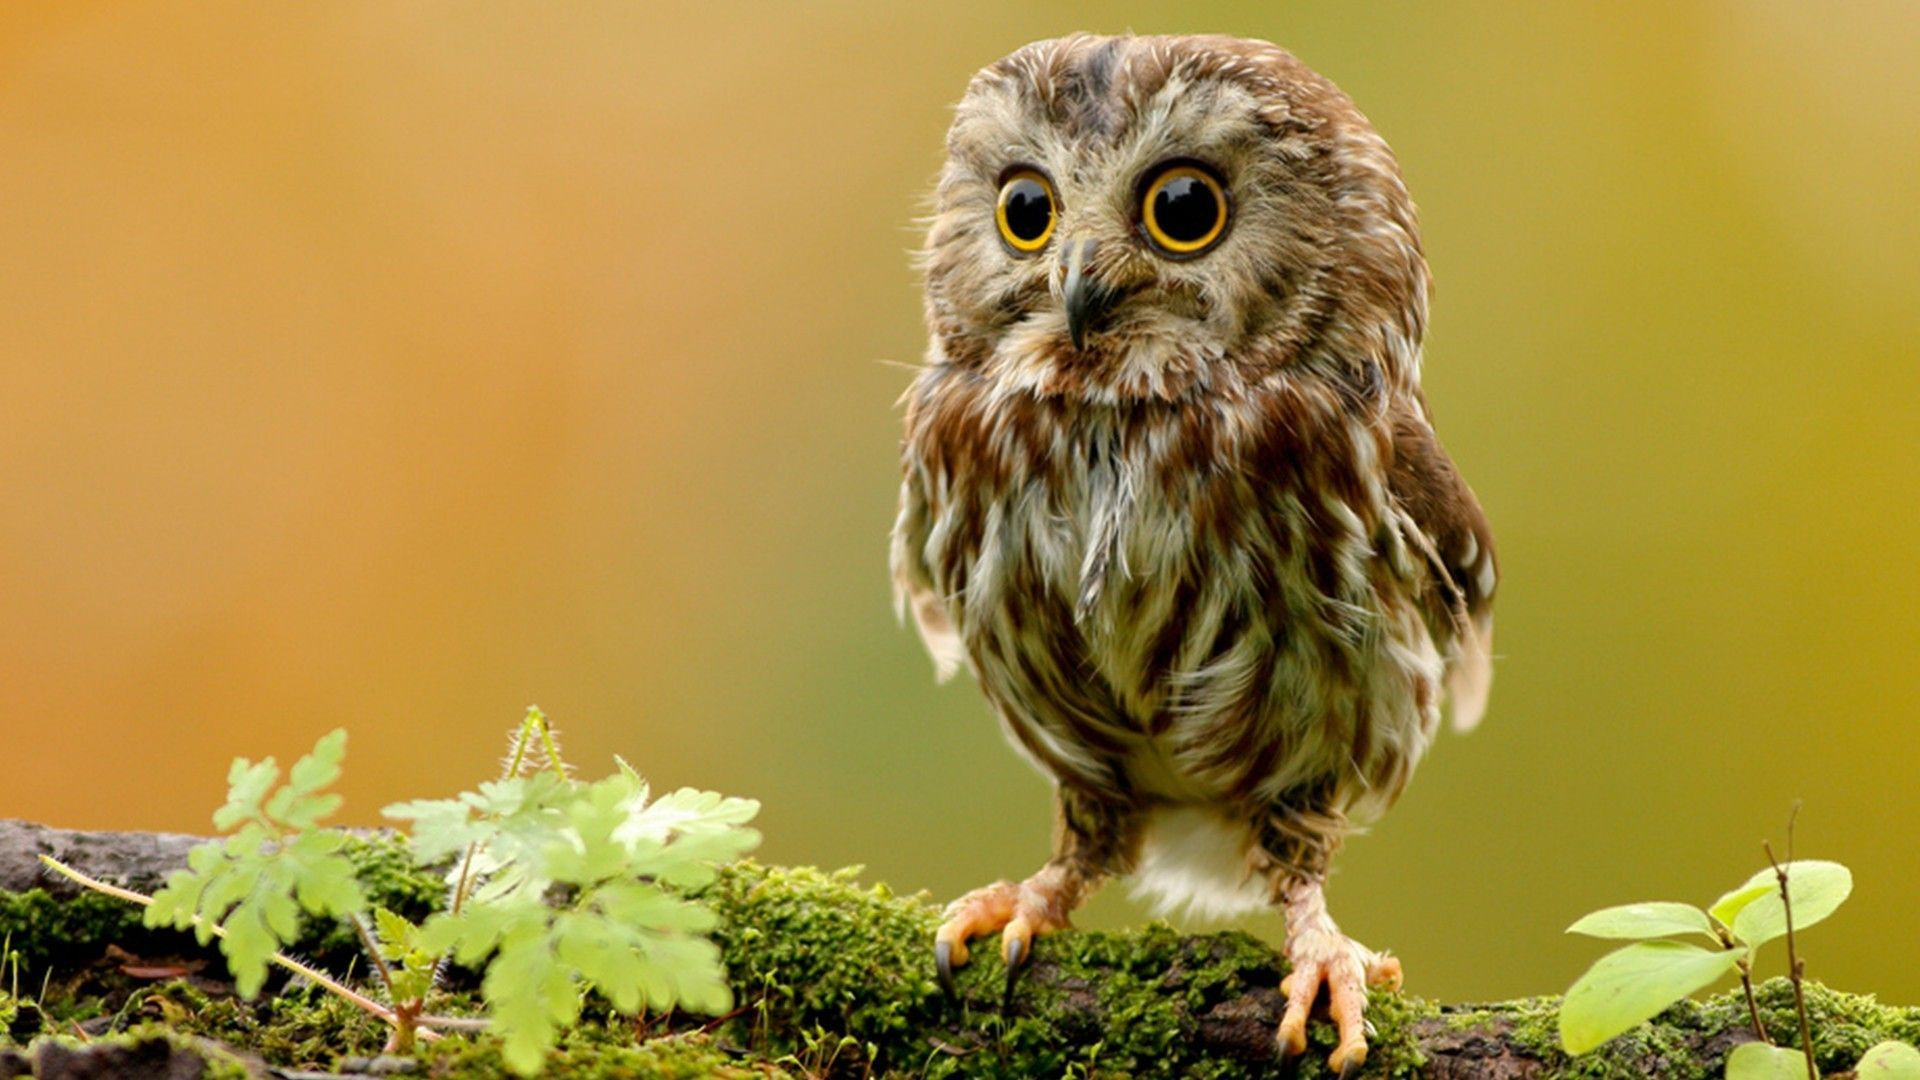 Cute Owl Wallpapers - Wallpaper Cave